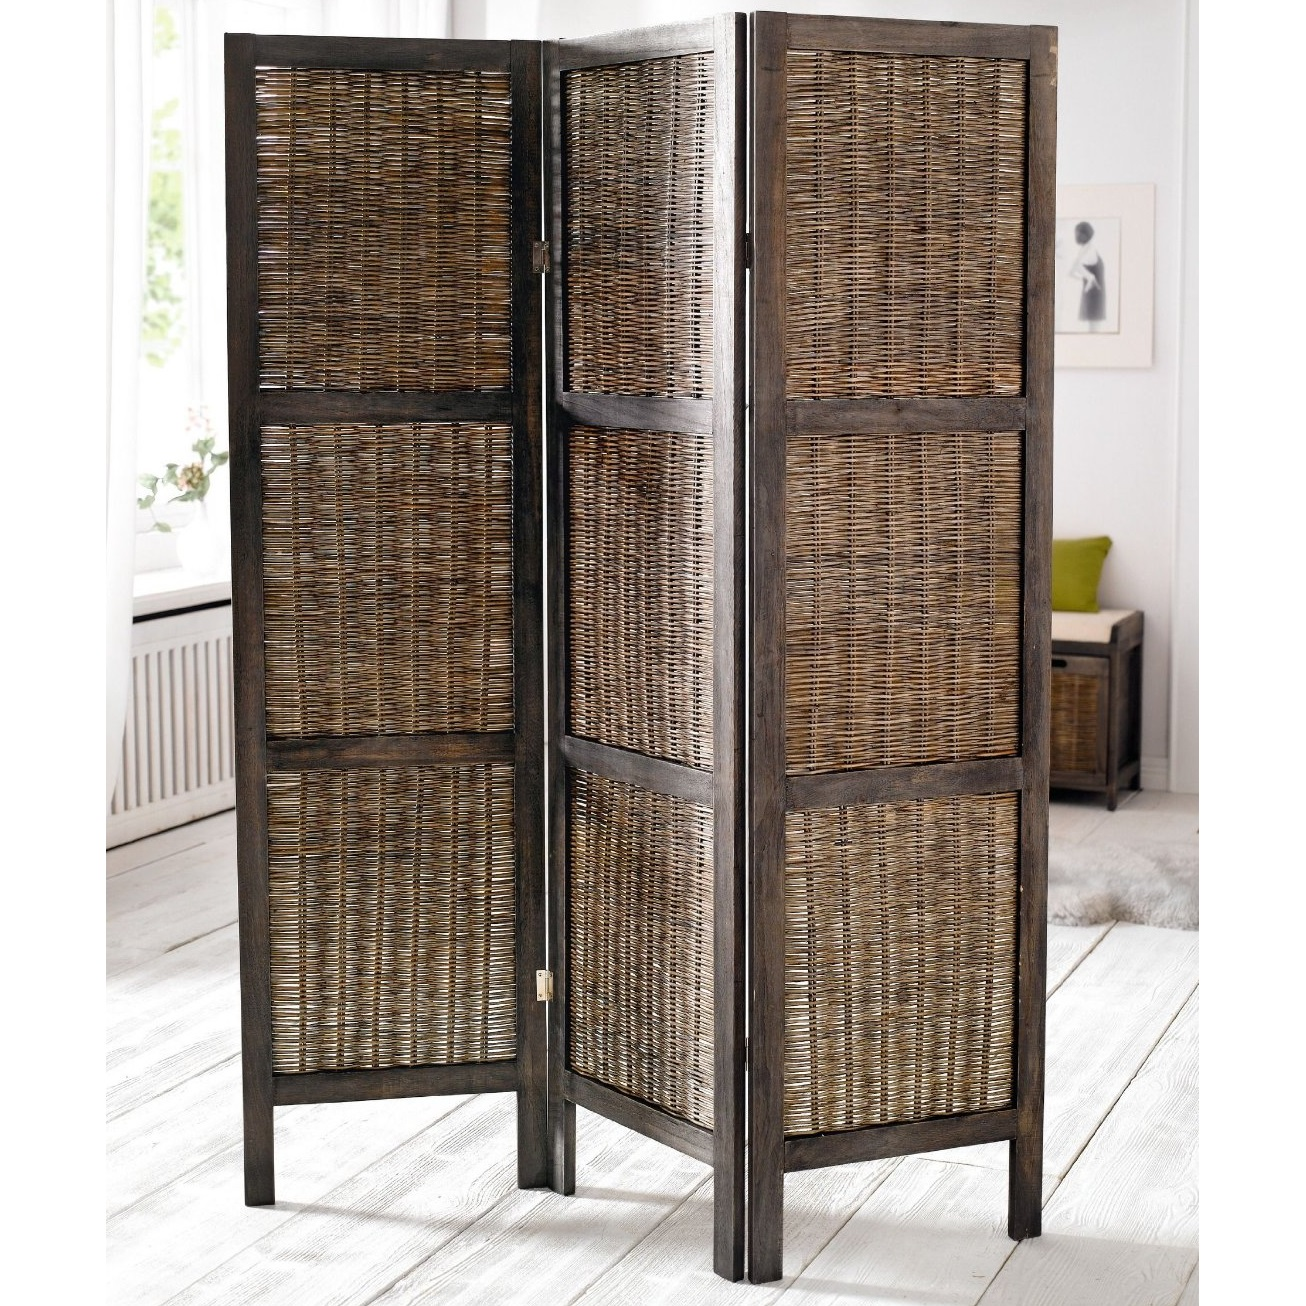 WOODEN FRAMED WICKER ROOM DIVIDER PRIVACY SCREEN PARTITION SHABBY CHIC VINTAG